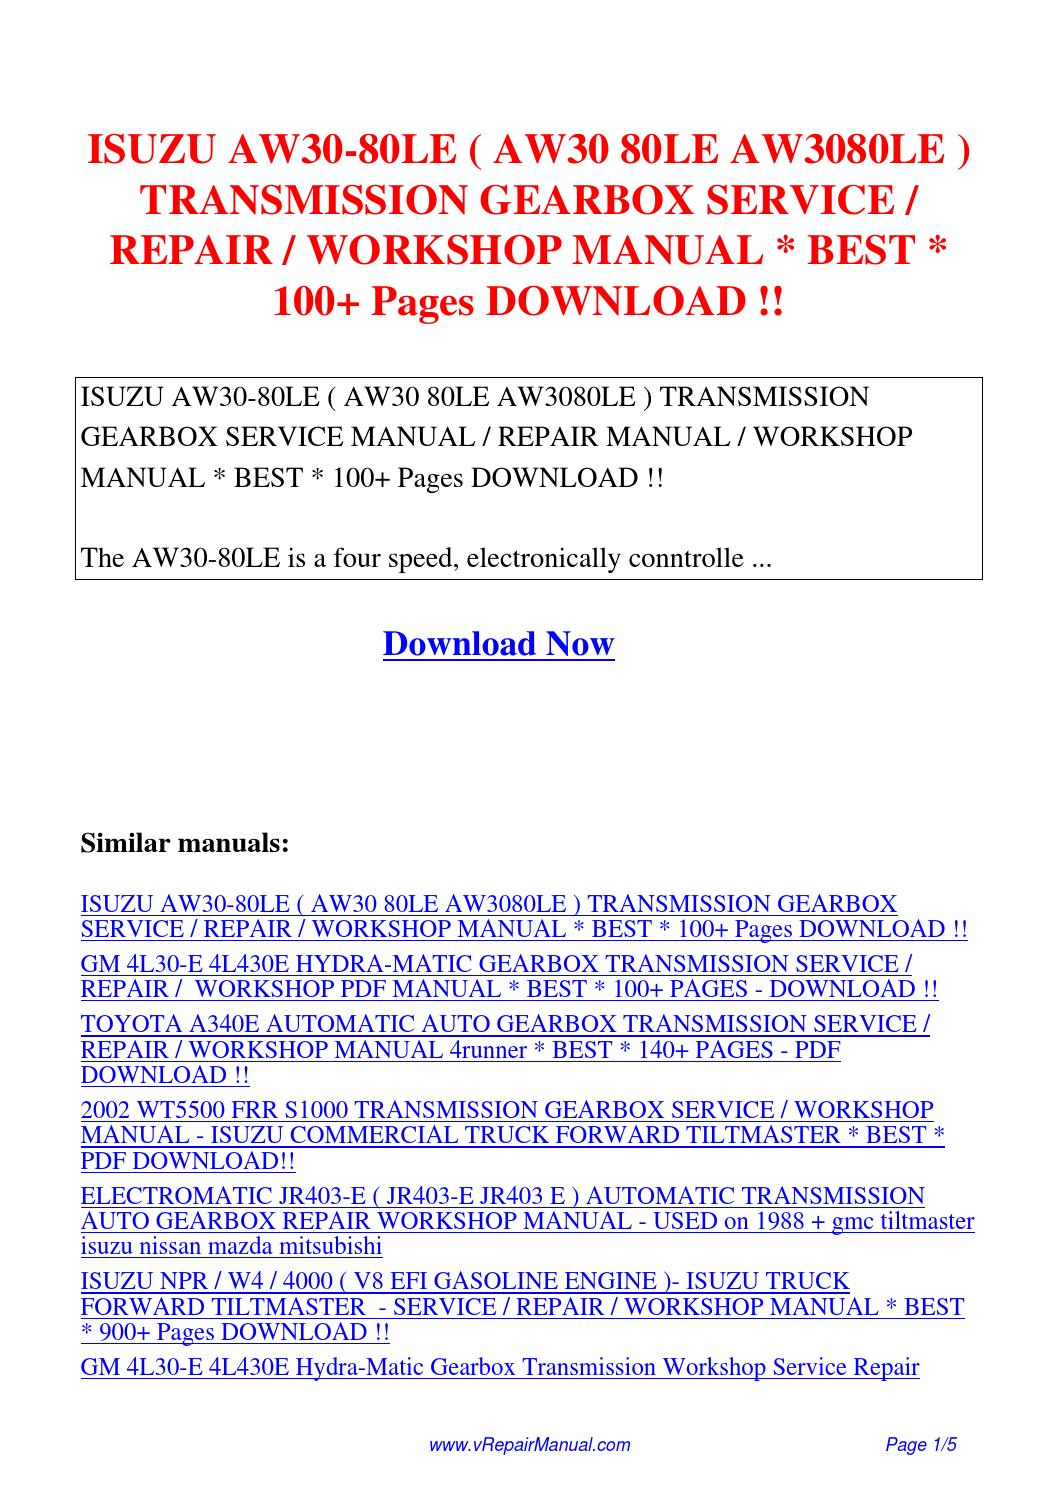 ISUZU AW30-80LE AW30 80LE AW3080LE TRANSMISSION GEARBOX SERVICE REPAIR  WORKSHOP MANUAL 100.pdf by David Zhang - issuu